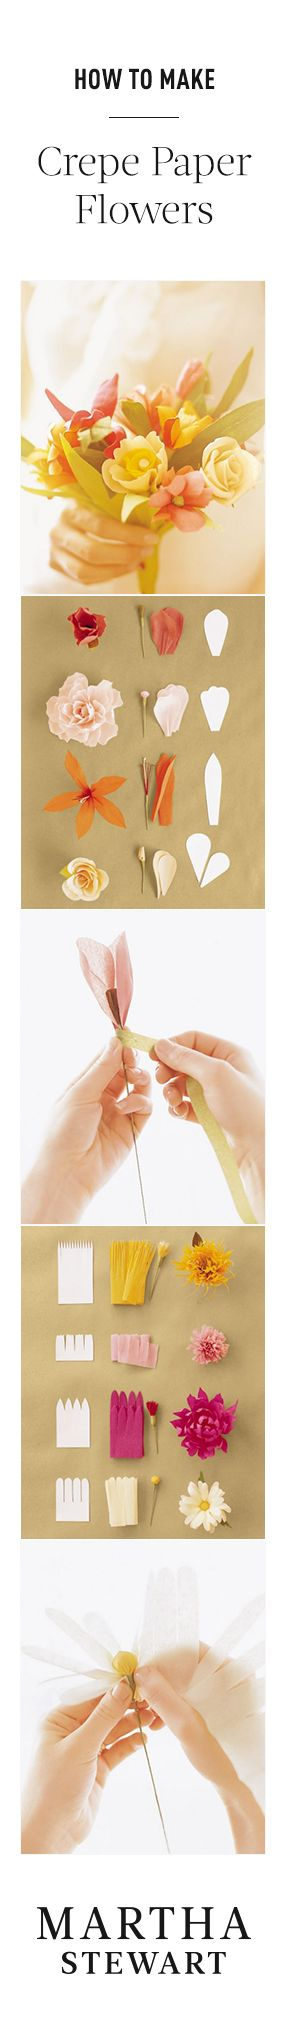 How to make crepe-paper flowers